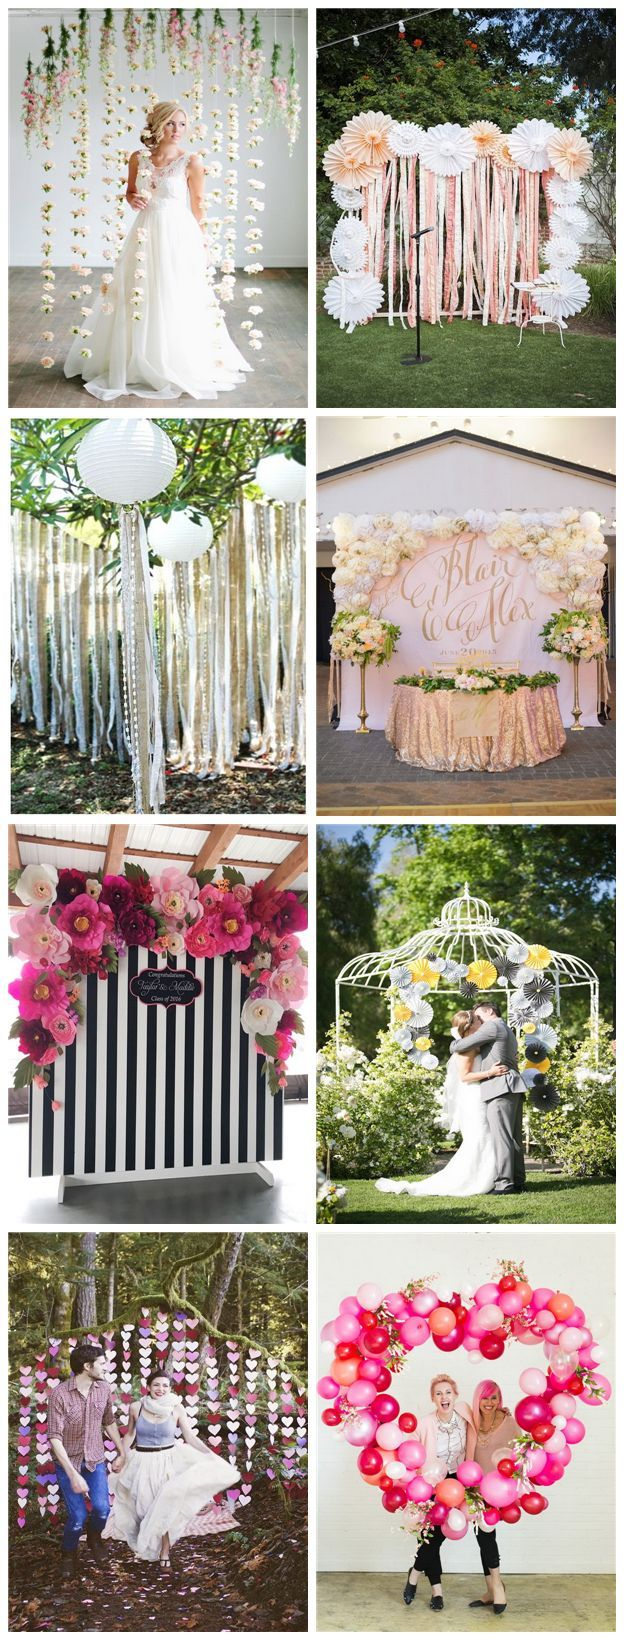 Diy party backdrop stand guest post backdrop stand party pretty photo booth backdrop ideas httplistingmorep14 solutioingenieria Choice Image